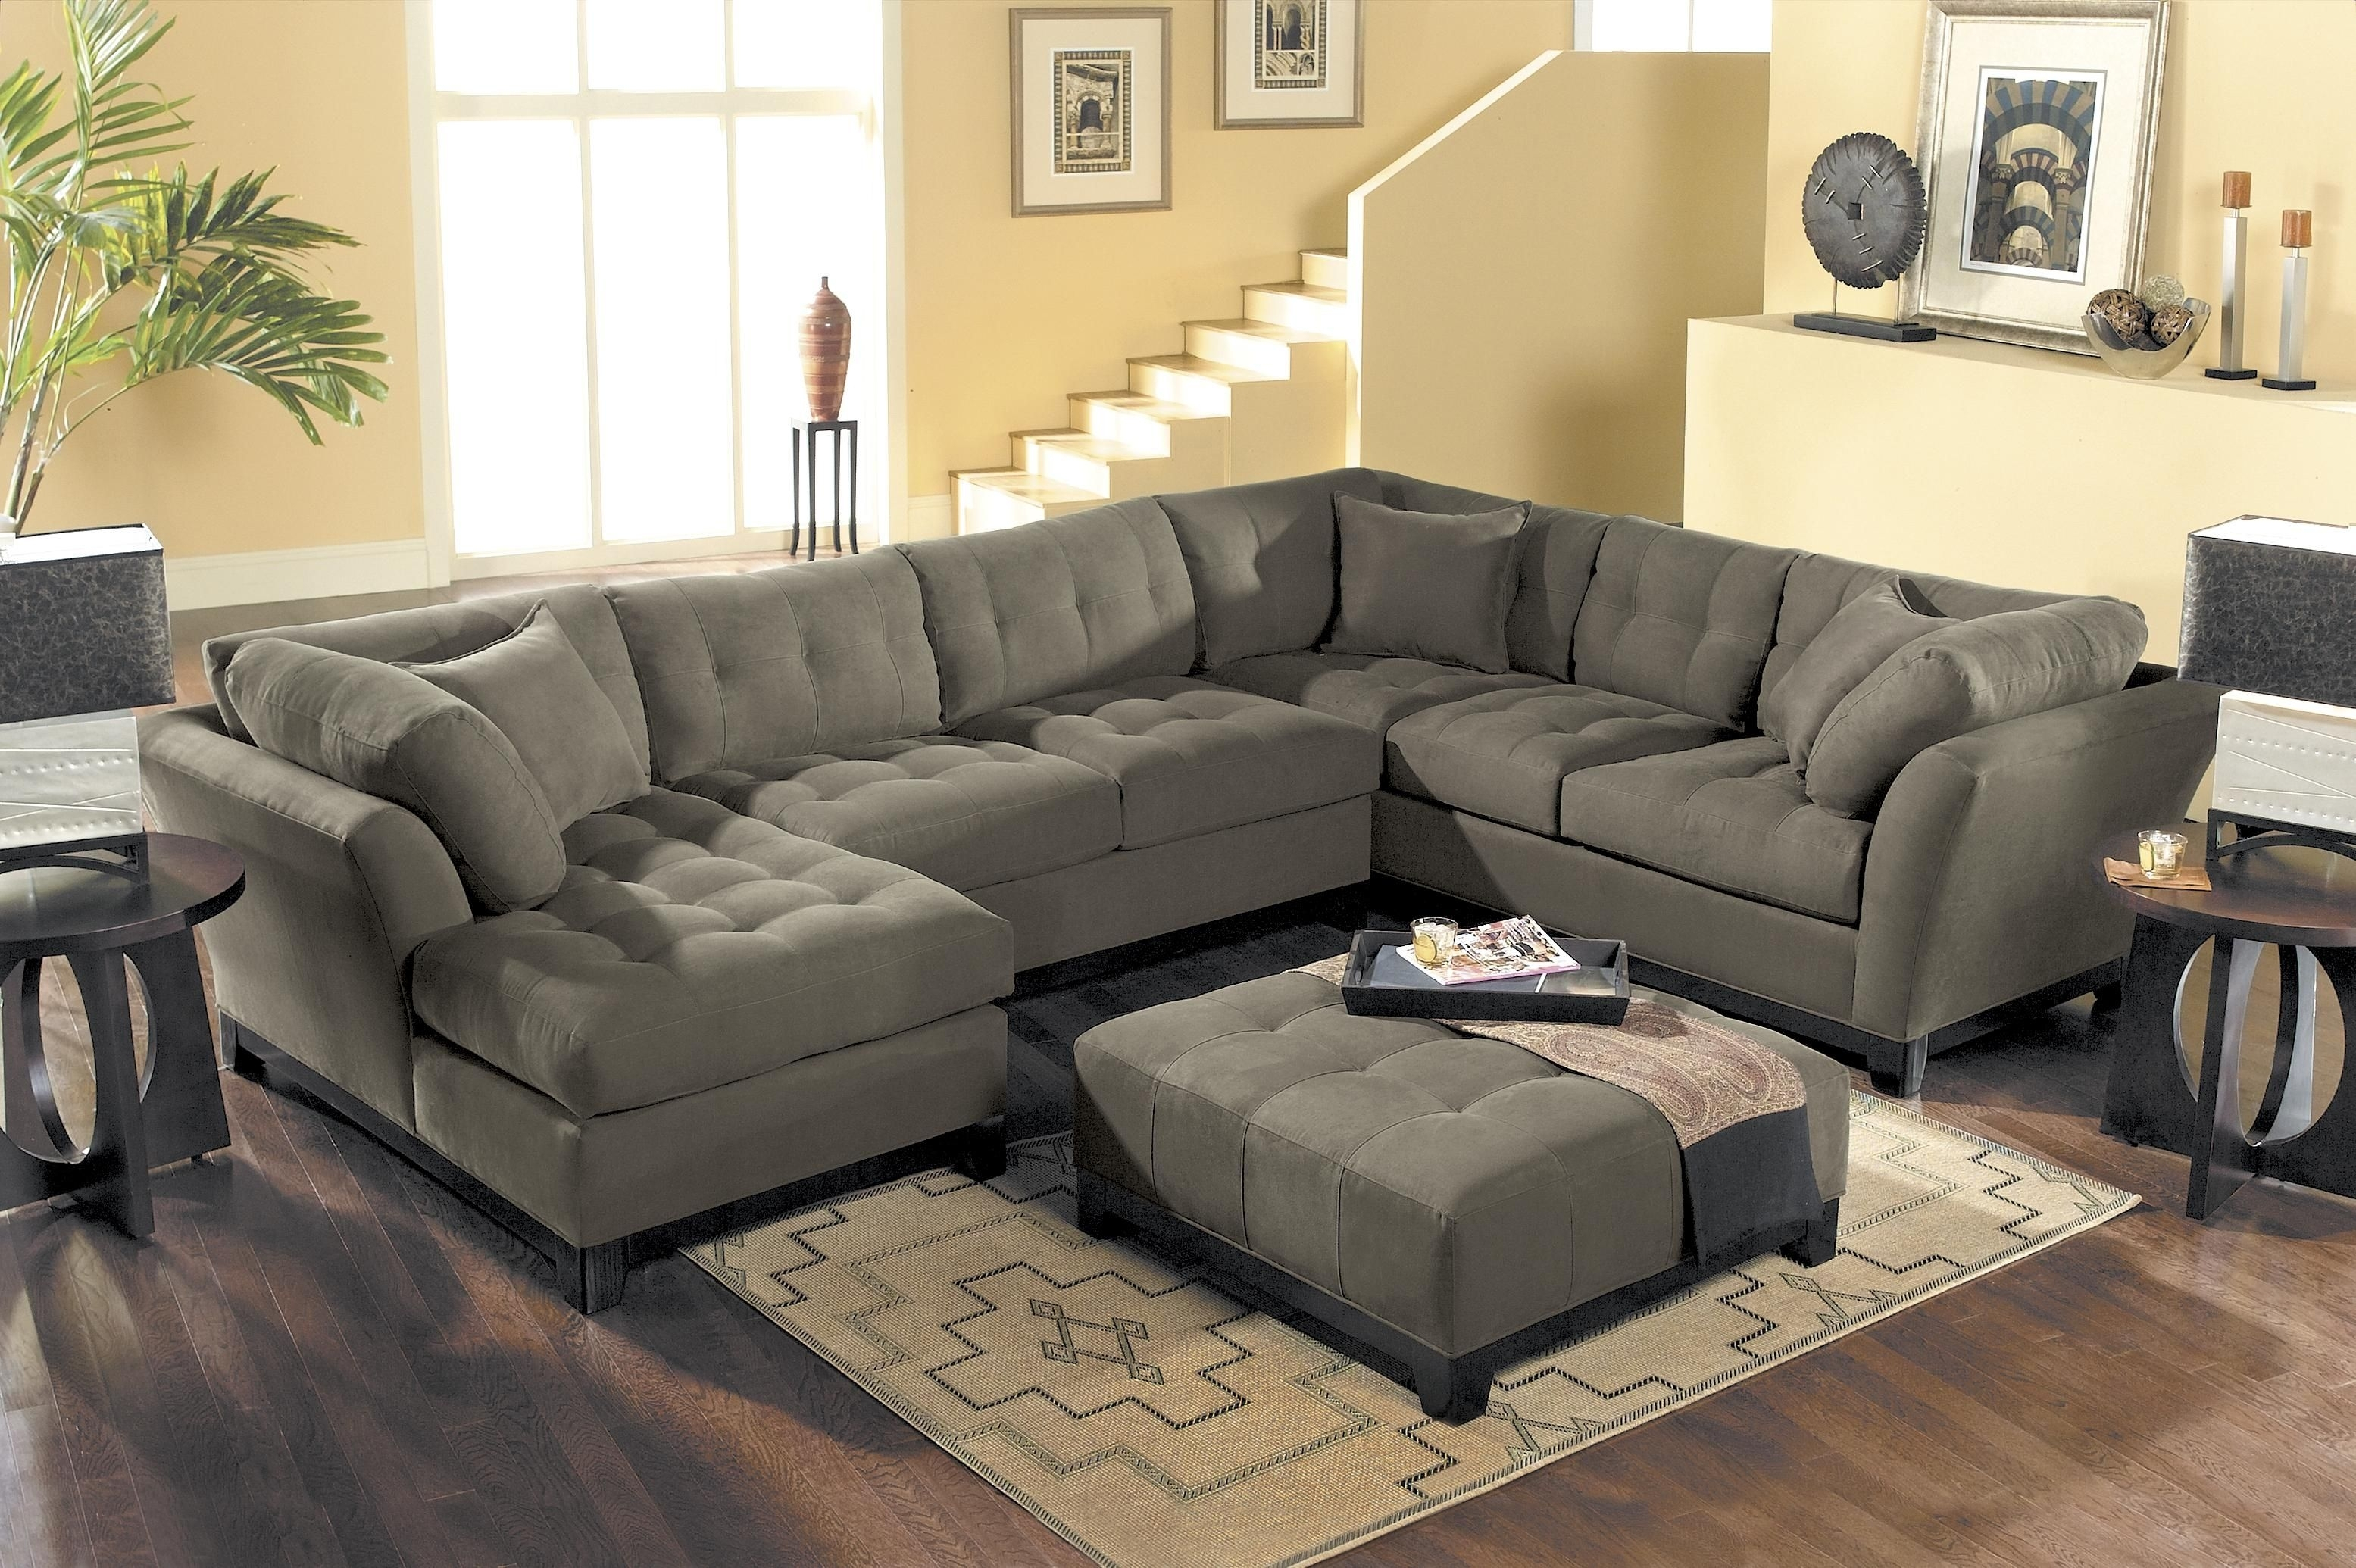 Hm Richards Metropolis Tufted Sectional Sofa With Chaise Lounger regarding Tufted Sectional Sofas (Image 5 of 10)